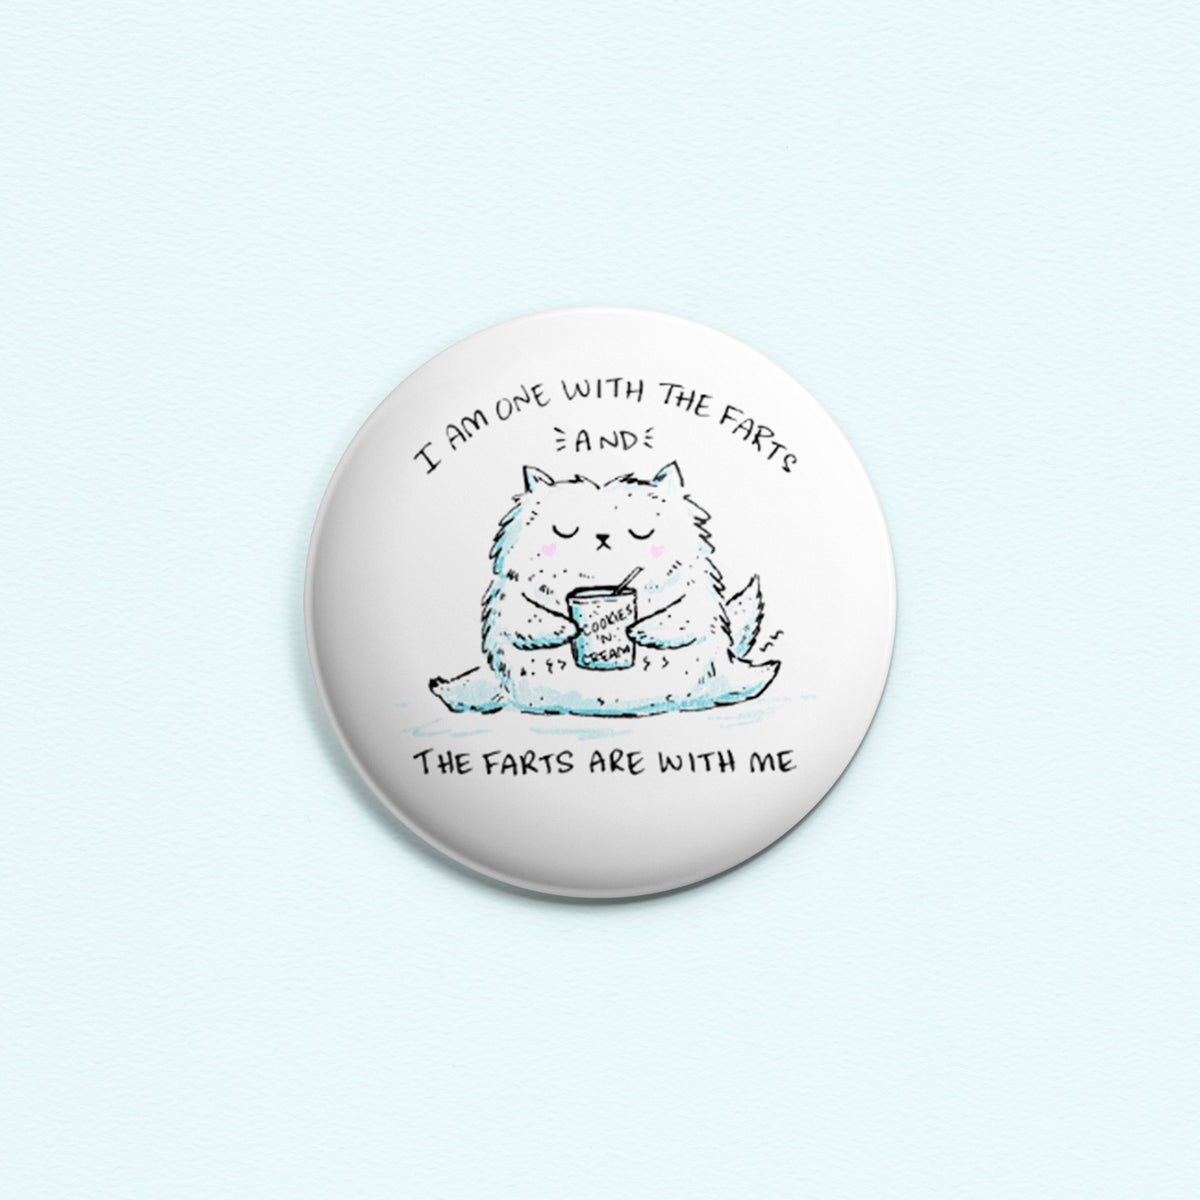 I Am One With The Farts And The Farts Are With Me - Button or magnet with a drawing of a cat eating ice cream and farting. Lactose intolerant.